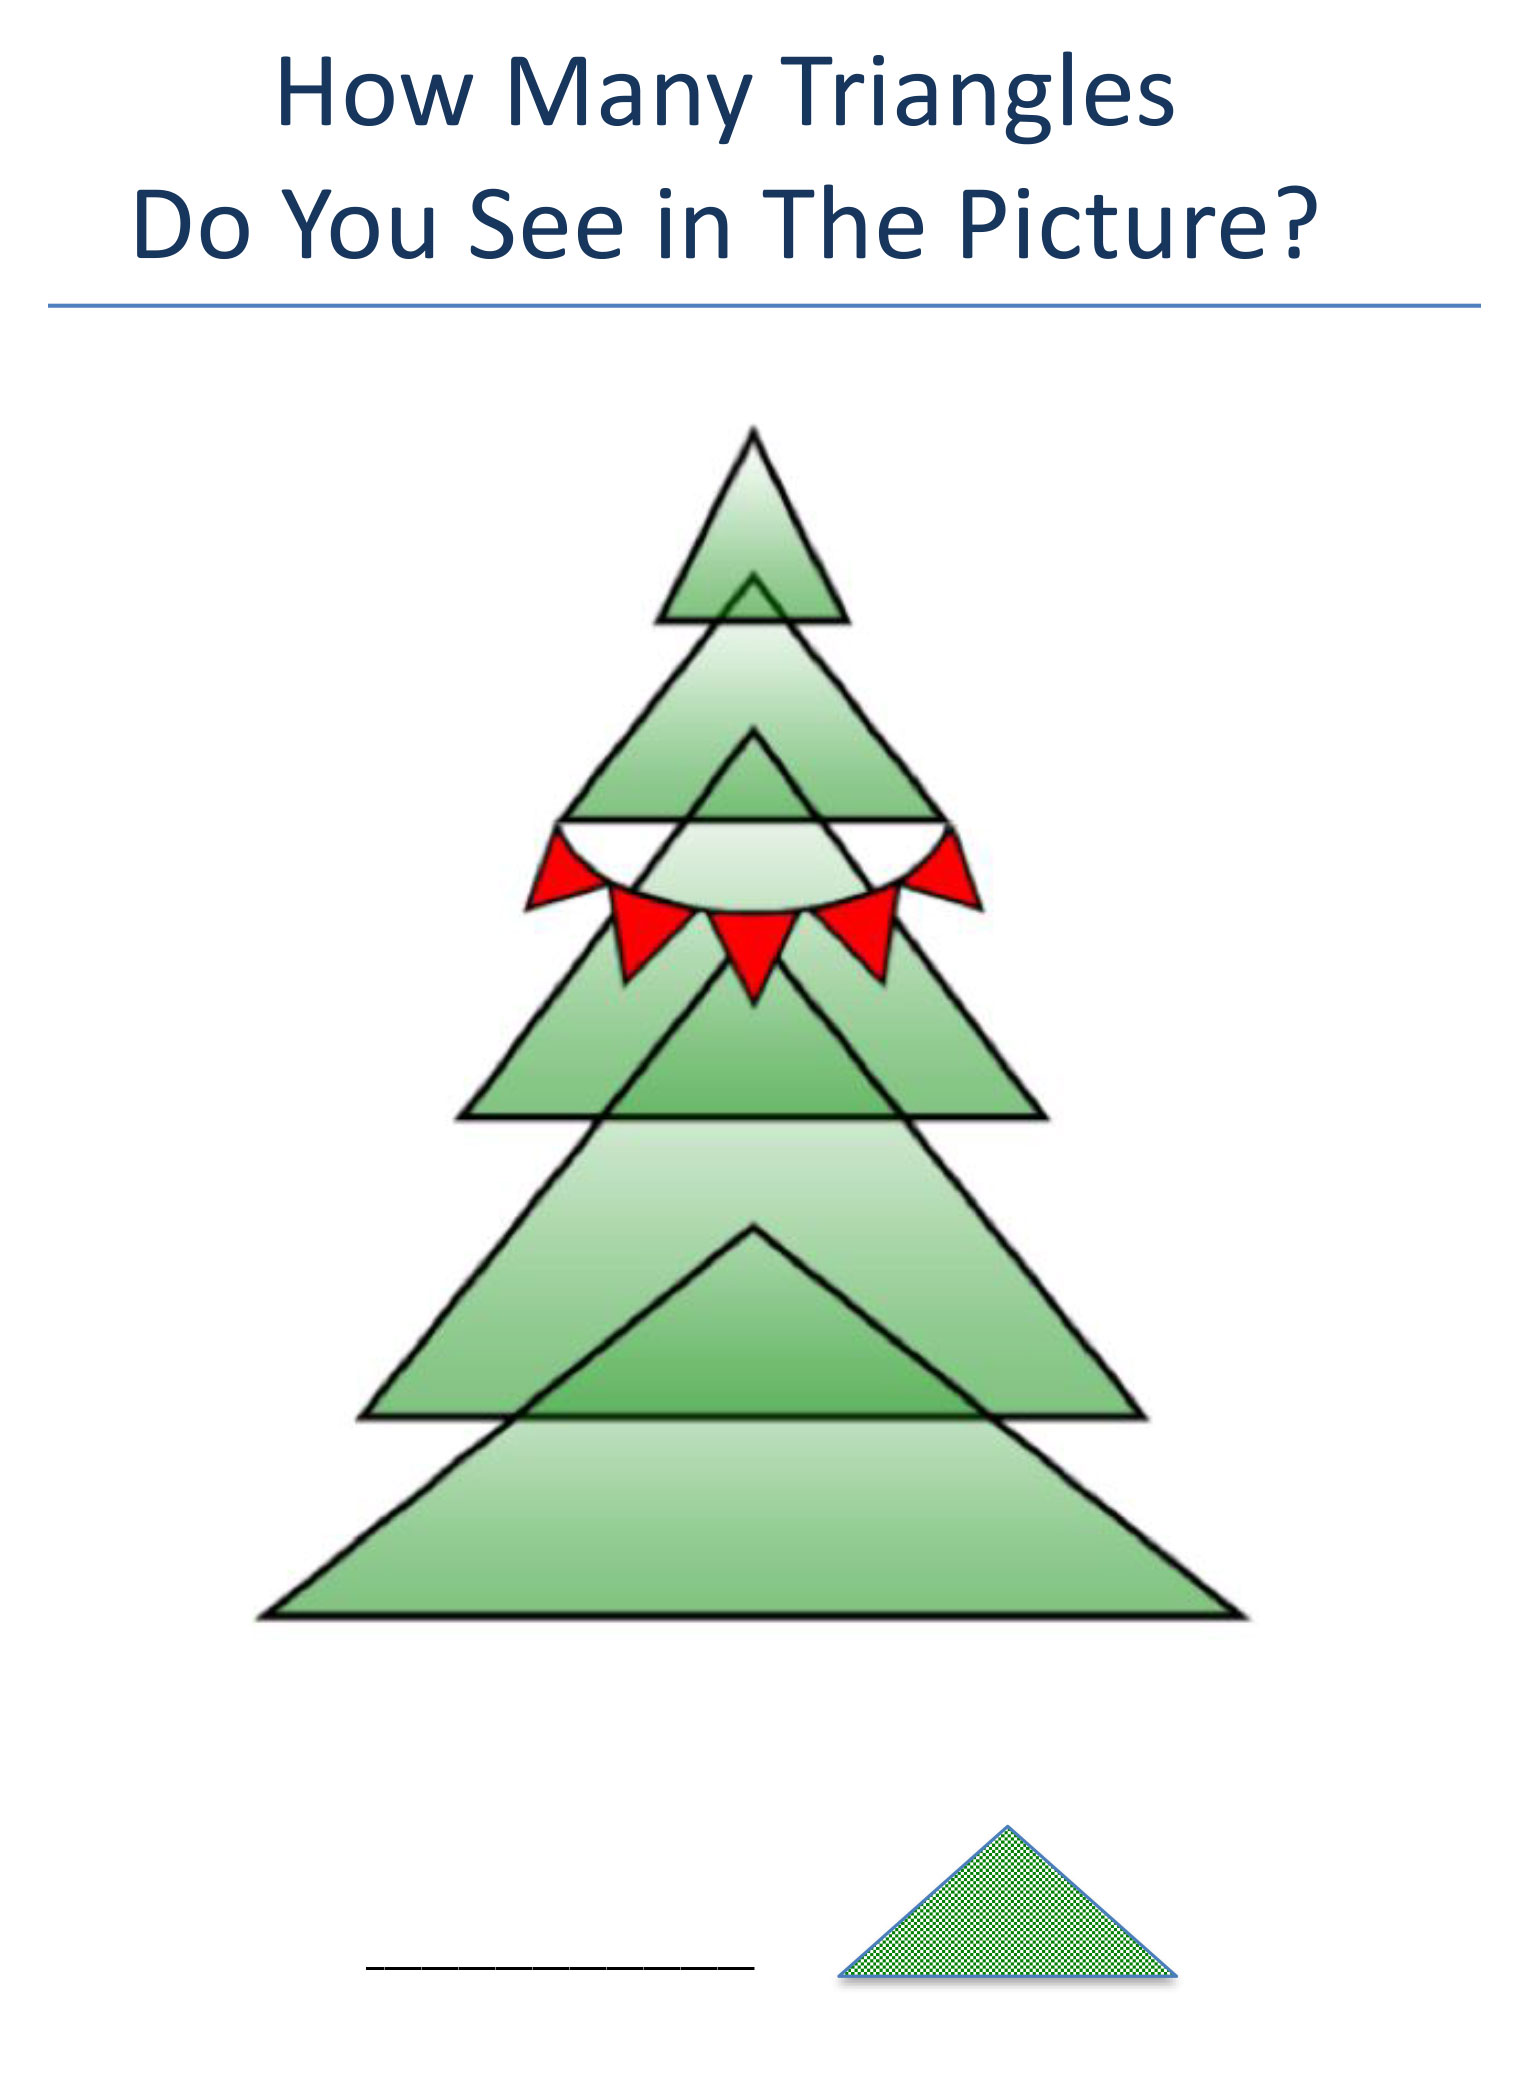 Counting-Triangles-in-the-picture.jpg